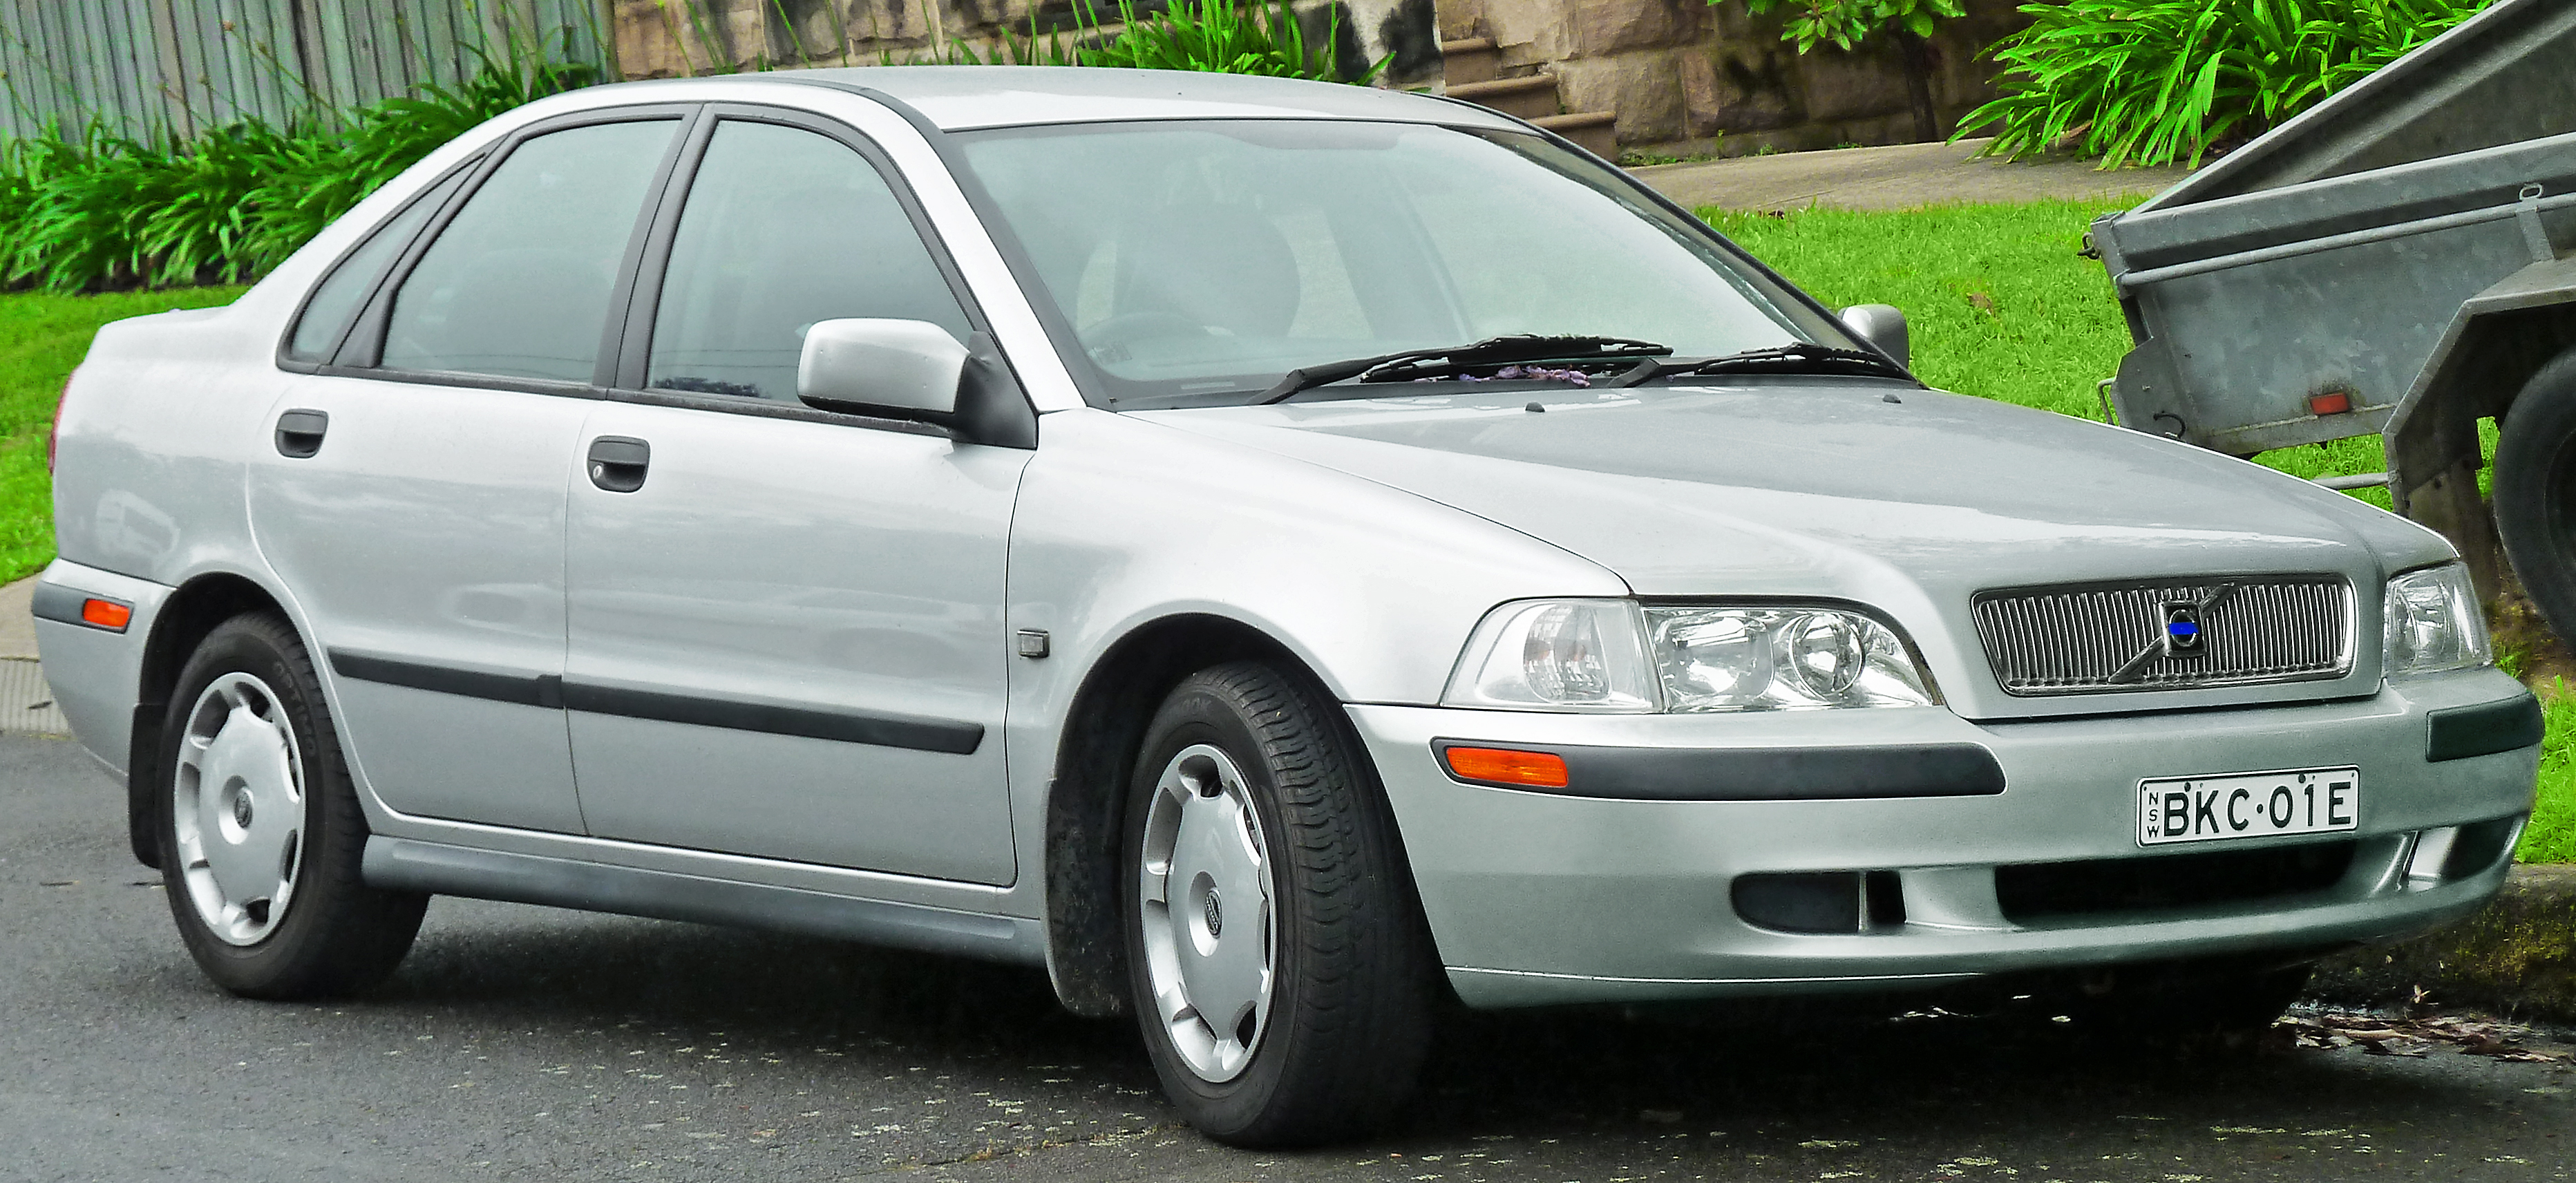 File:2000-2002 Volvo S40 2.0 sedan (2011-11-17).jpg - Wikimedia Commons